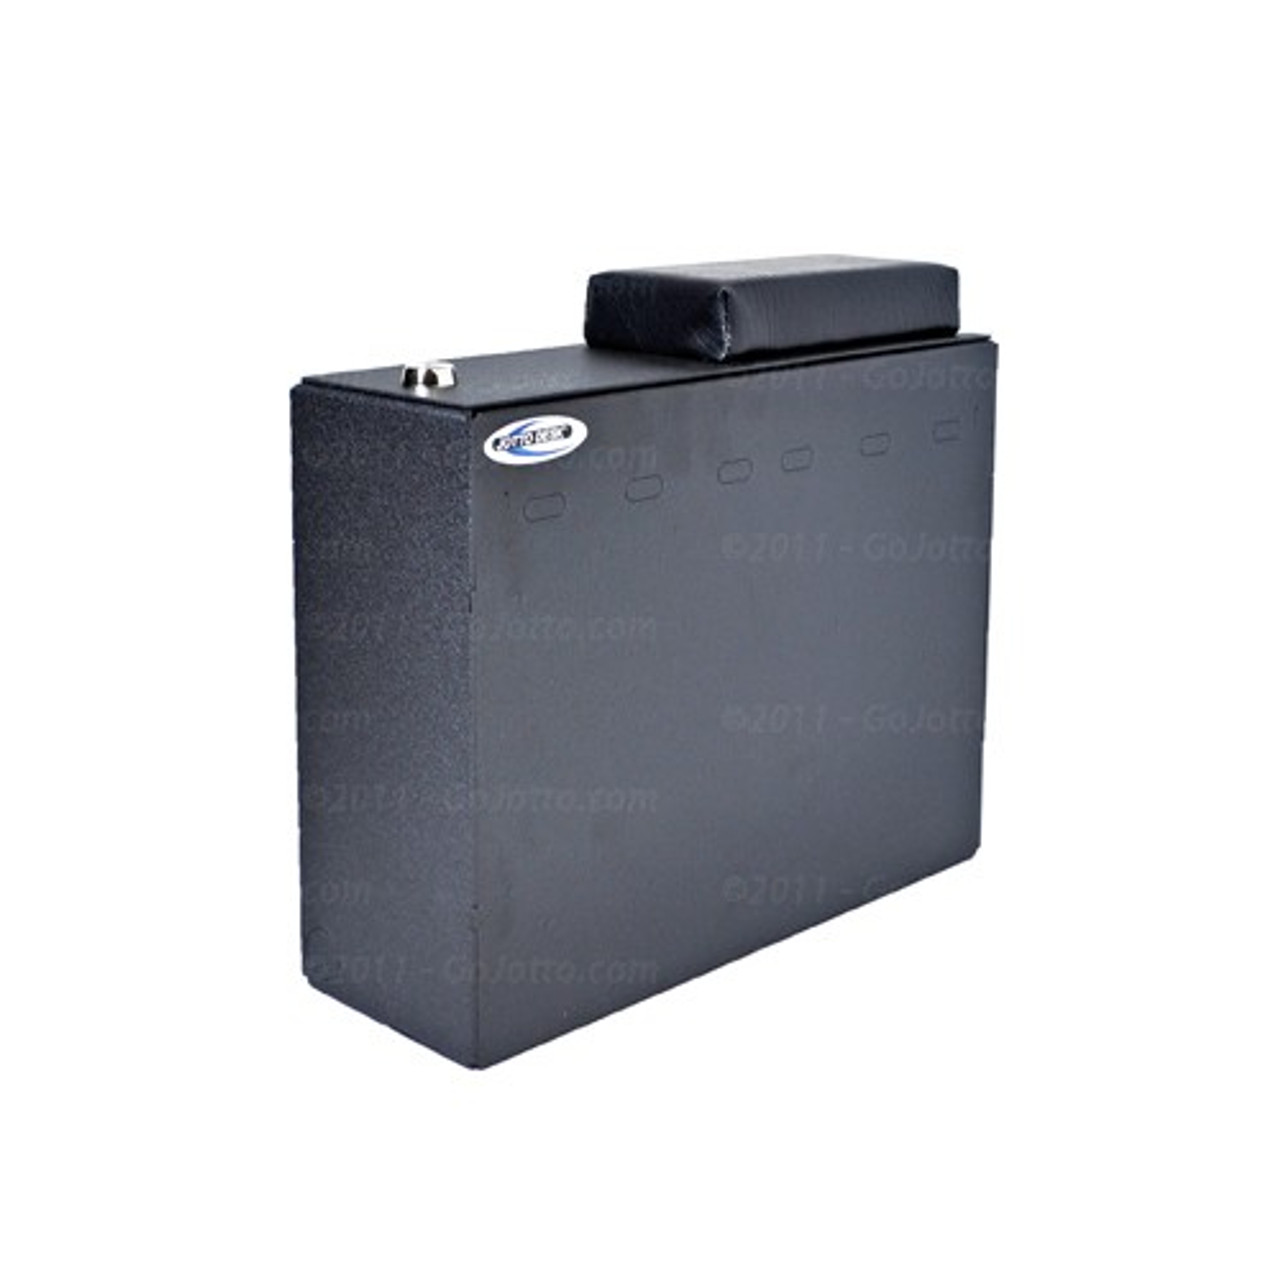 Hanging File Box With Lid And Arm Rest by Jotto Desk